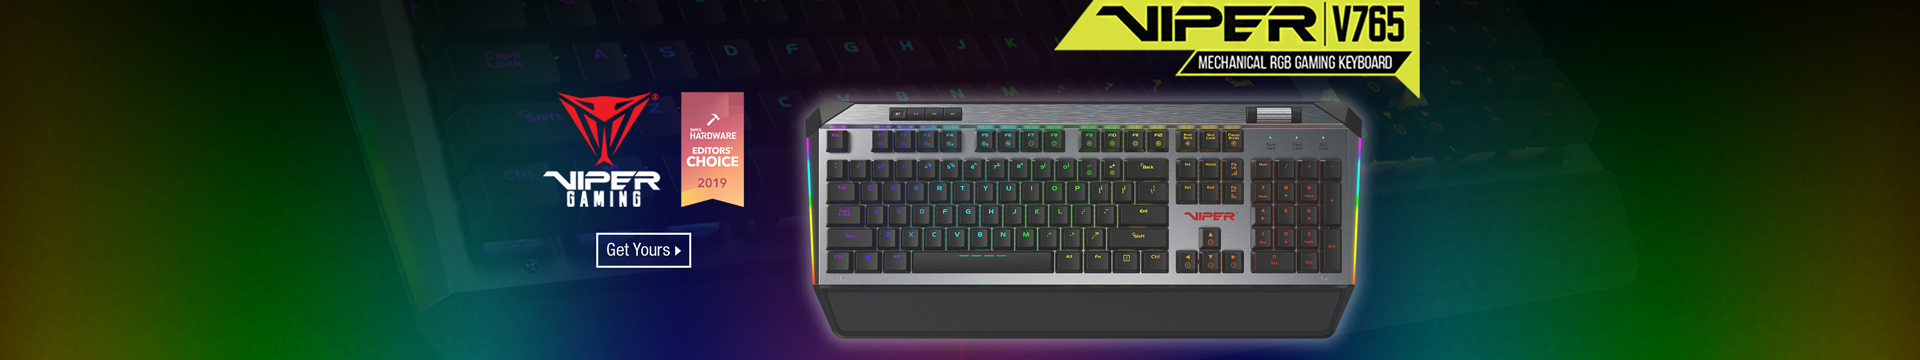 Input Devices - Keyboards, Mice, Webcams & More - Newegg com